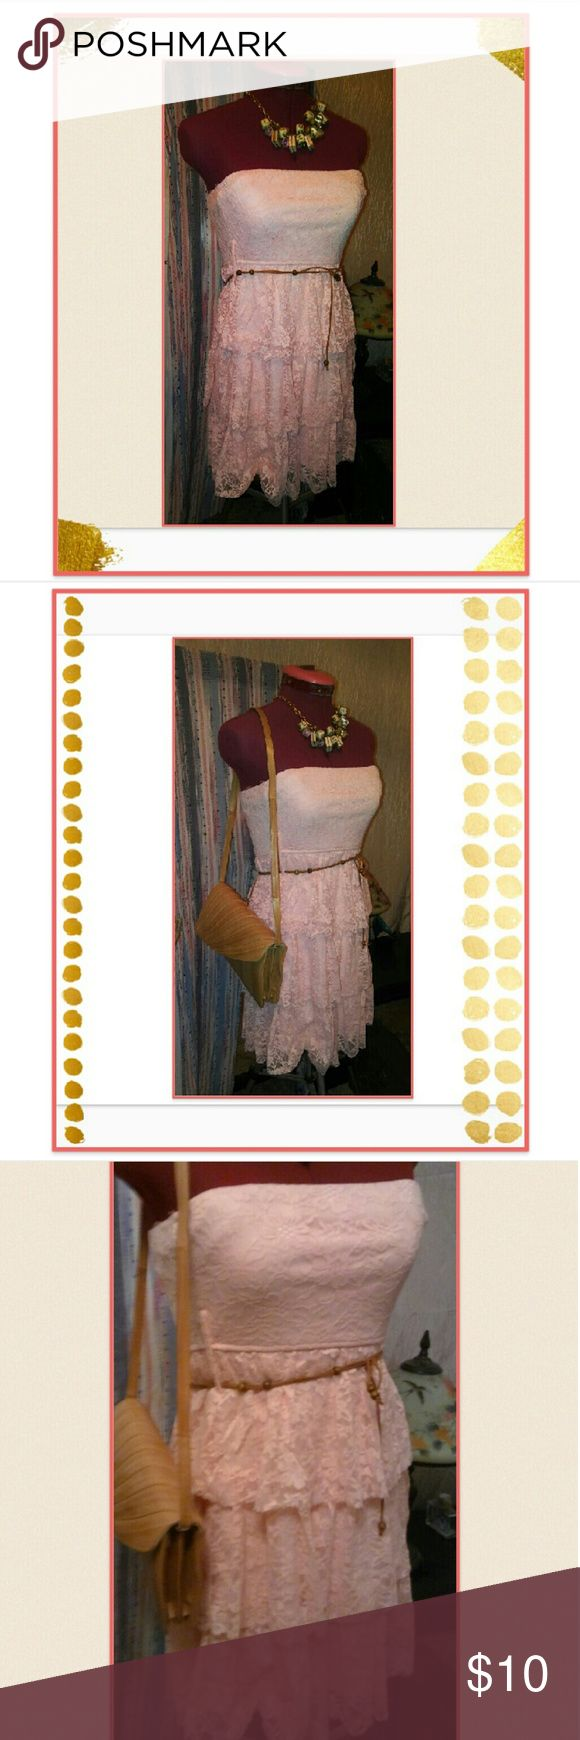 Rue21 Peach Lace Dress Rue21 Peach Lace Dress Beautiful dress by Rue21, worn once! Size medium and sure to be a hit! Add your own belt, large or small, a necklace or bag from our collection and save big!  *Vintage Eel Bag, Boho Scrabble Necklace sold separately, cord belt not included. Rue21 Dresses